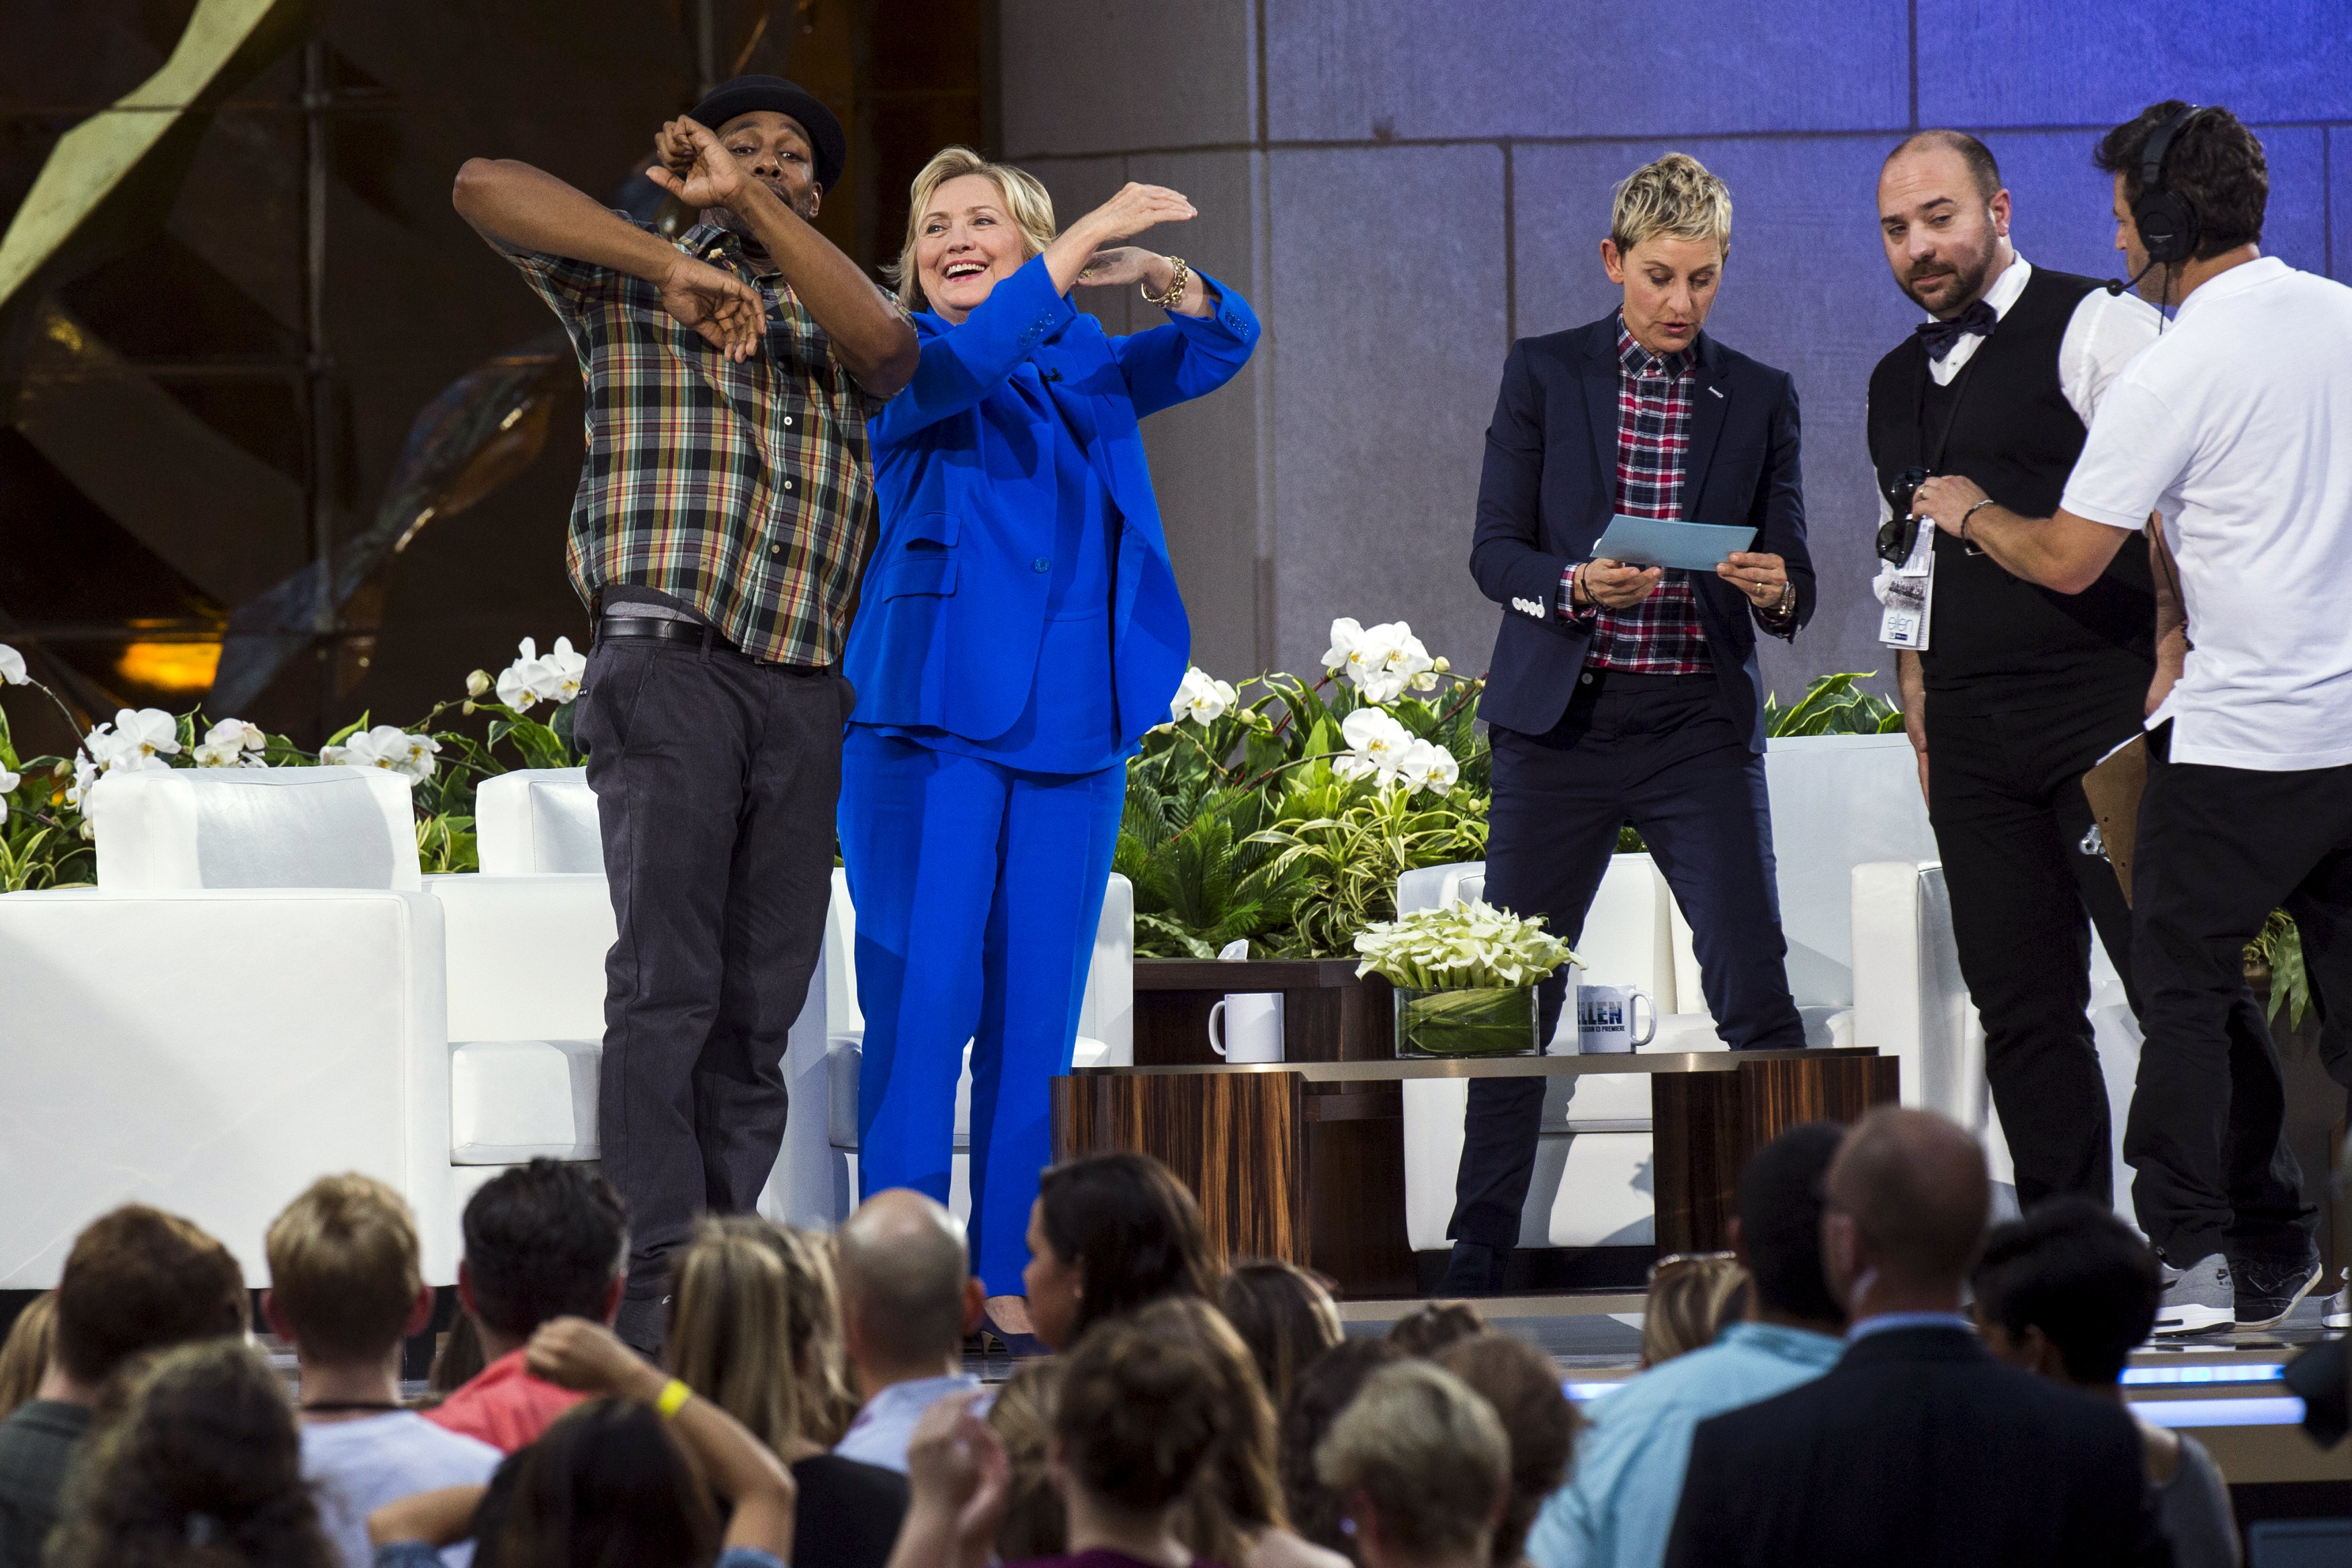 U.S. Democratic presidential candidate Hillary Rodham Clinton dances with DJ Stephen 'Twitch' Boss next to television host Ellen Degeneres during a taping of 'The Ellen Degeneres Show' in New York Tuesday. | REUTERS